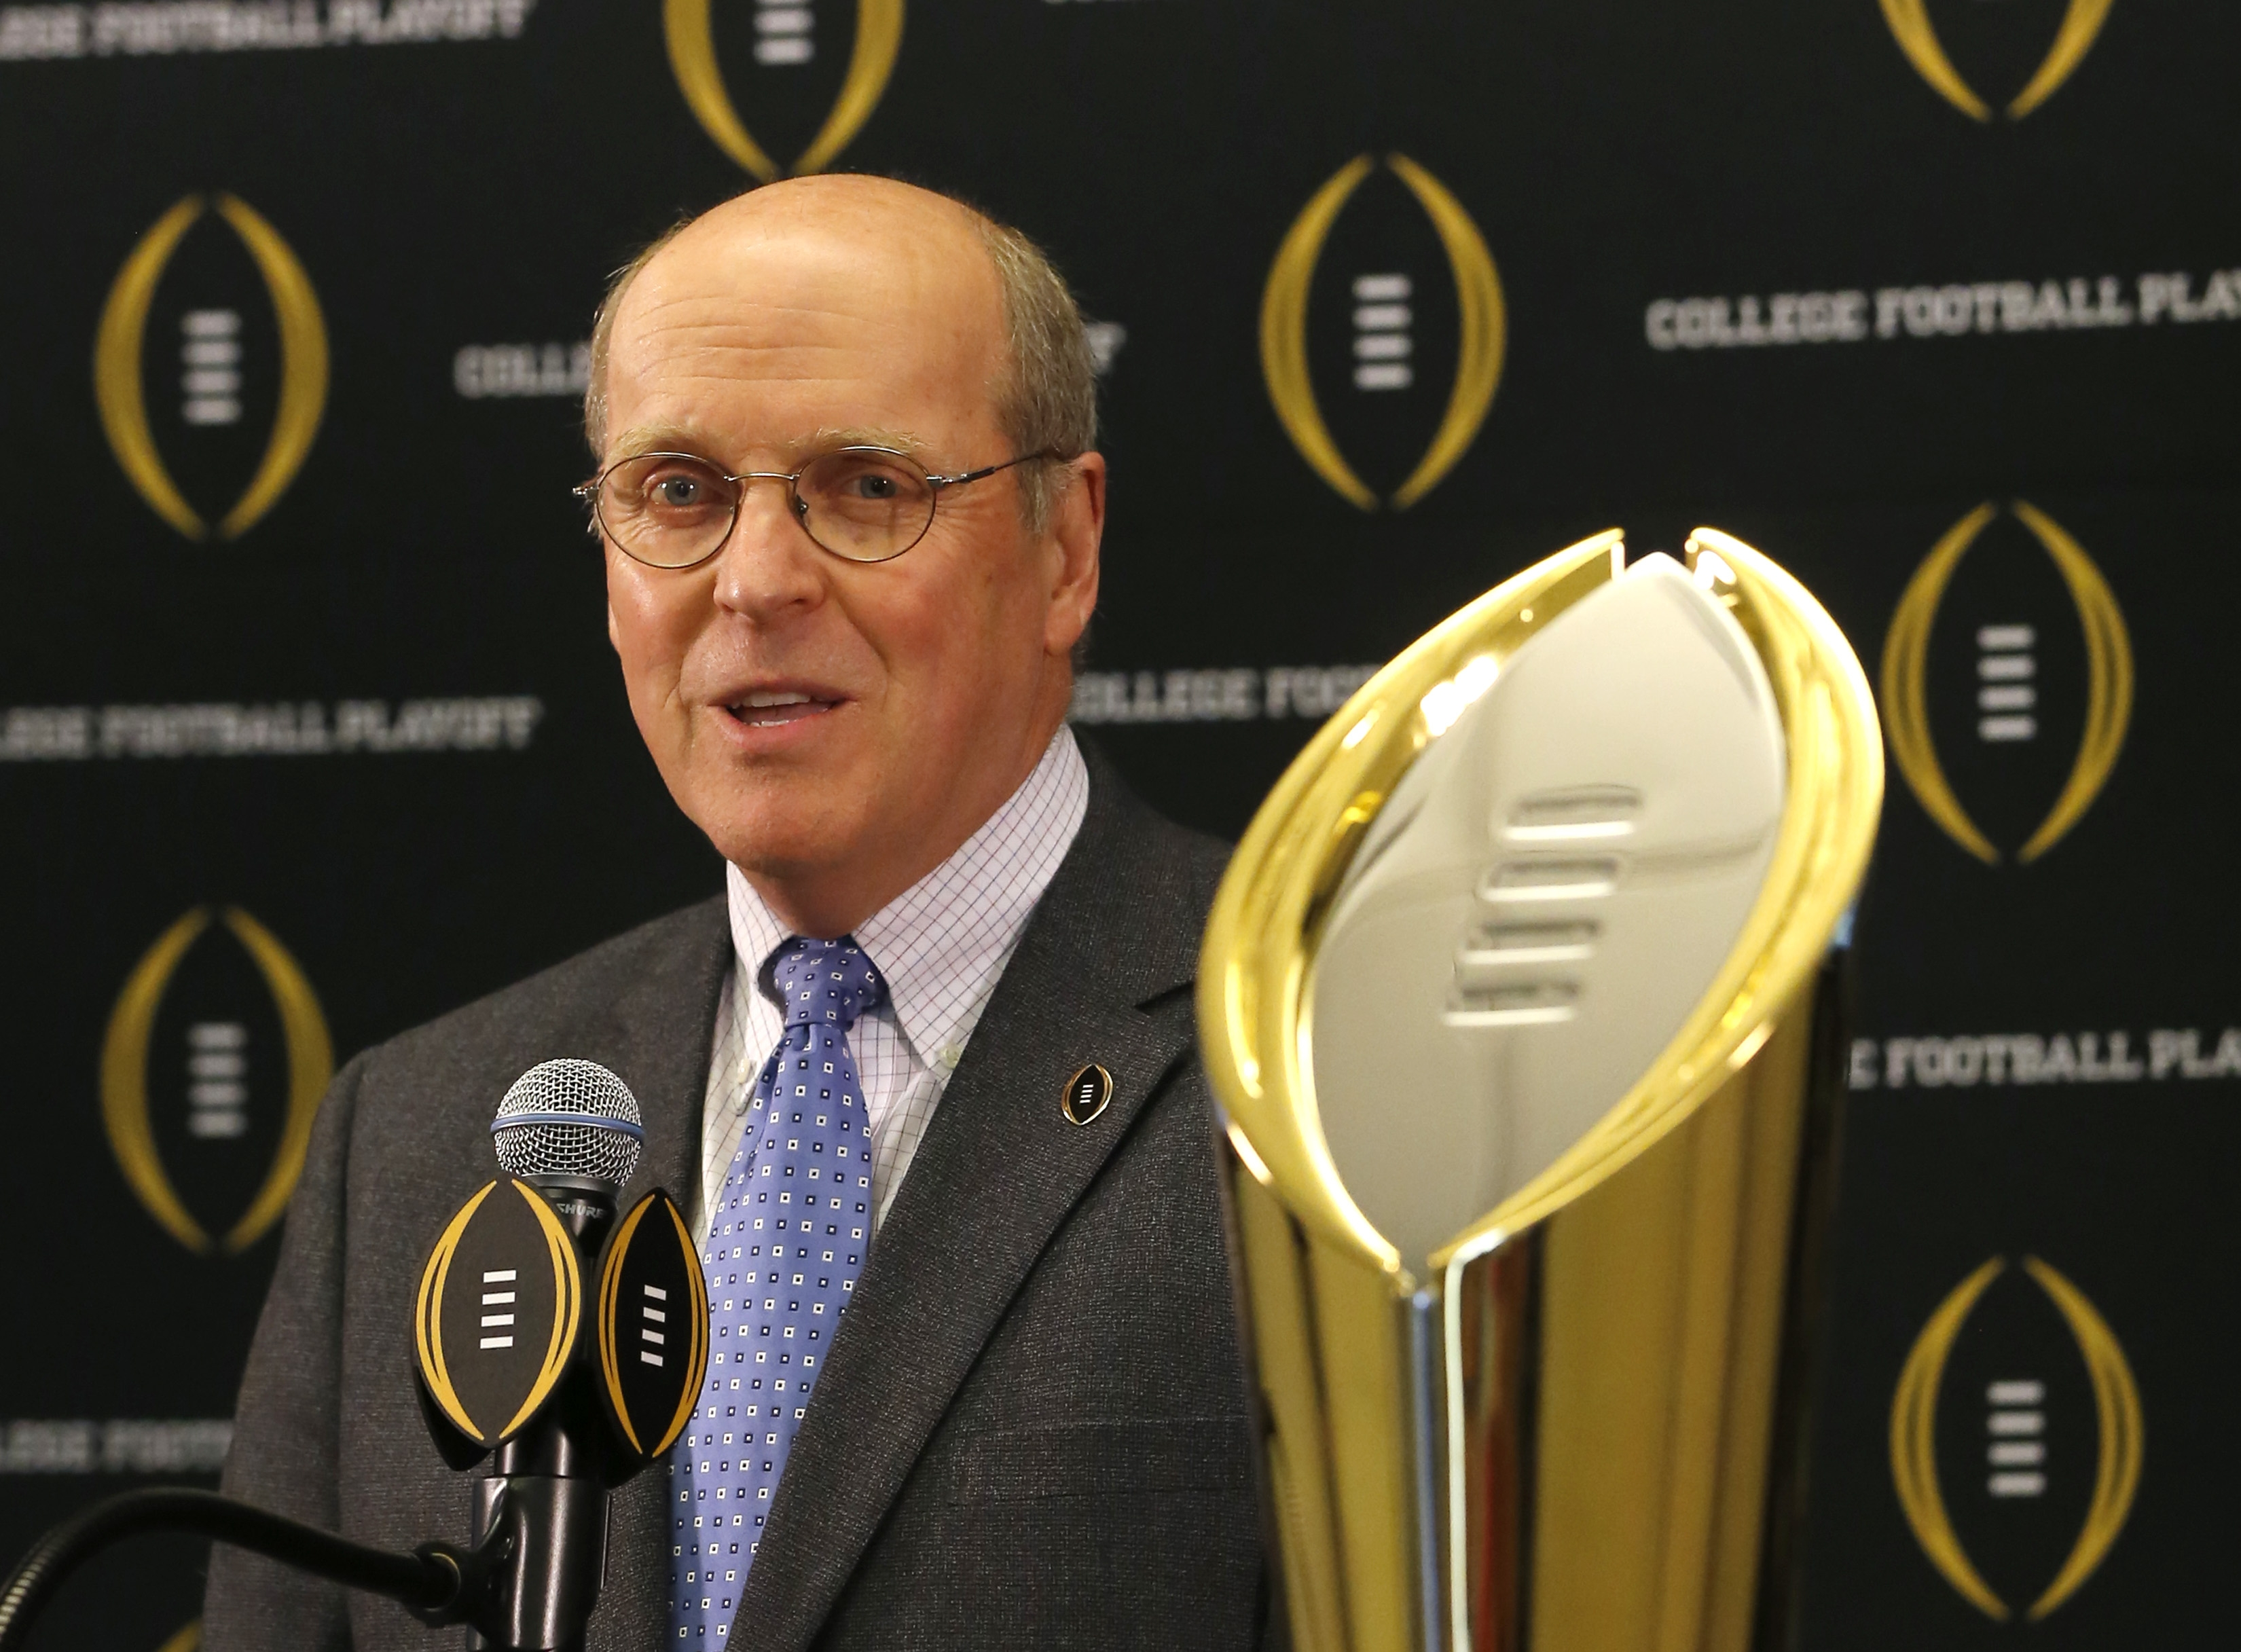 College Football Playoff executive director Bill Hancock announces that Atlanta will host the 2018 national championship game, Santa Clara, Calif., will host the 2019 game, and New Orleans will host the 2020 game, during a news conference Wednesday, Nov.